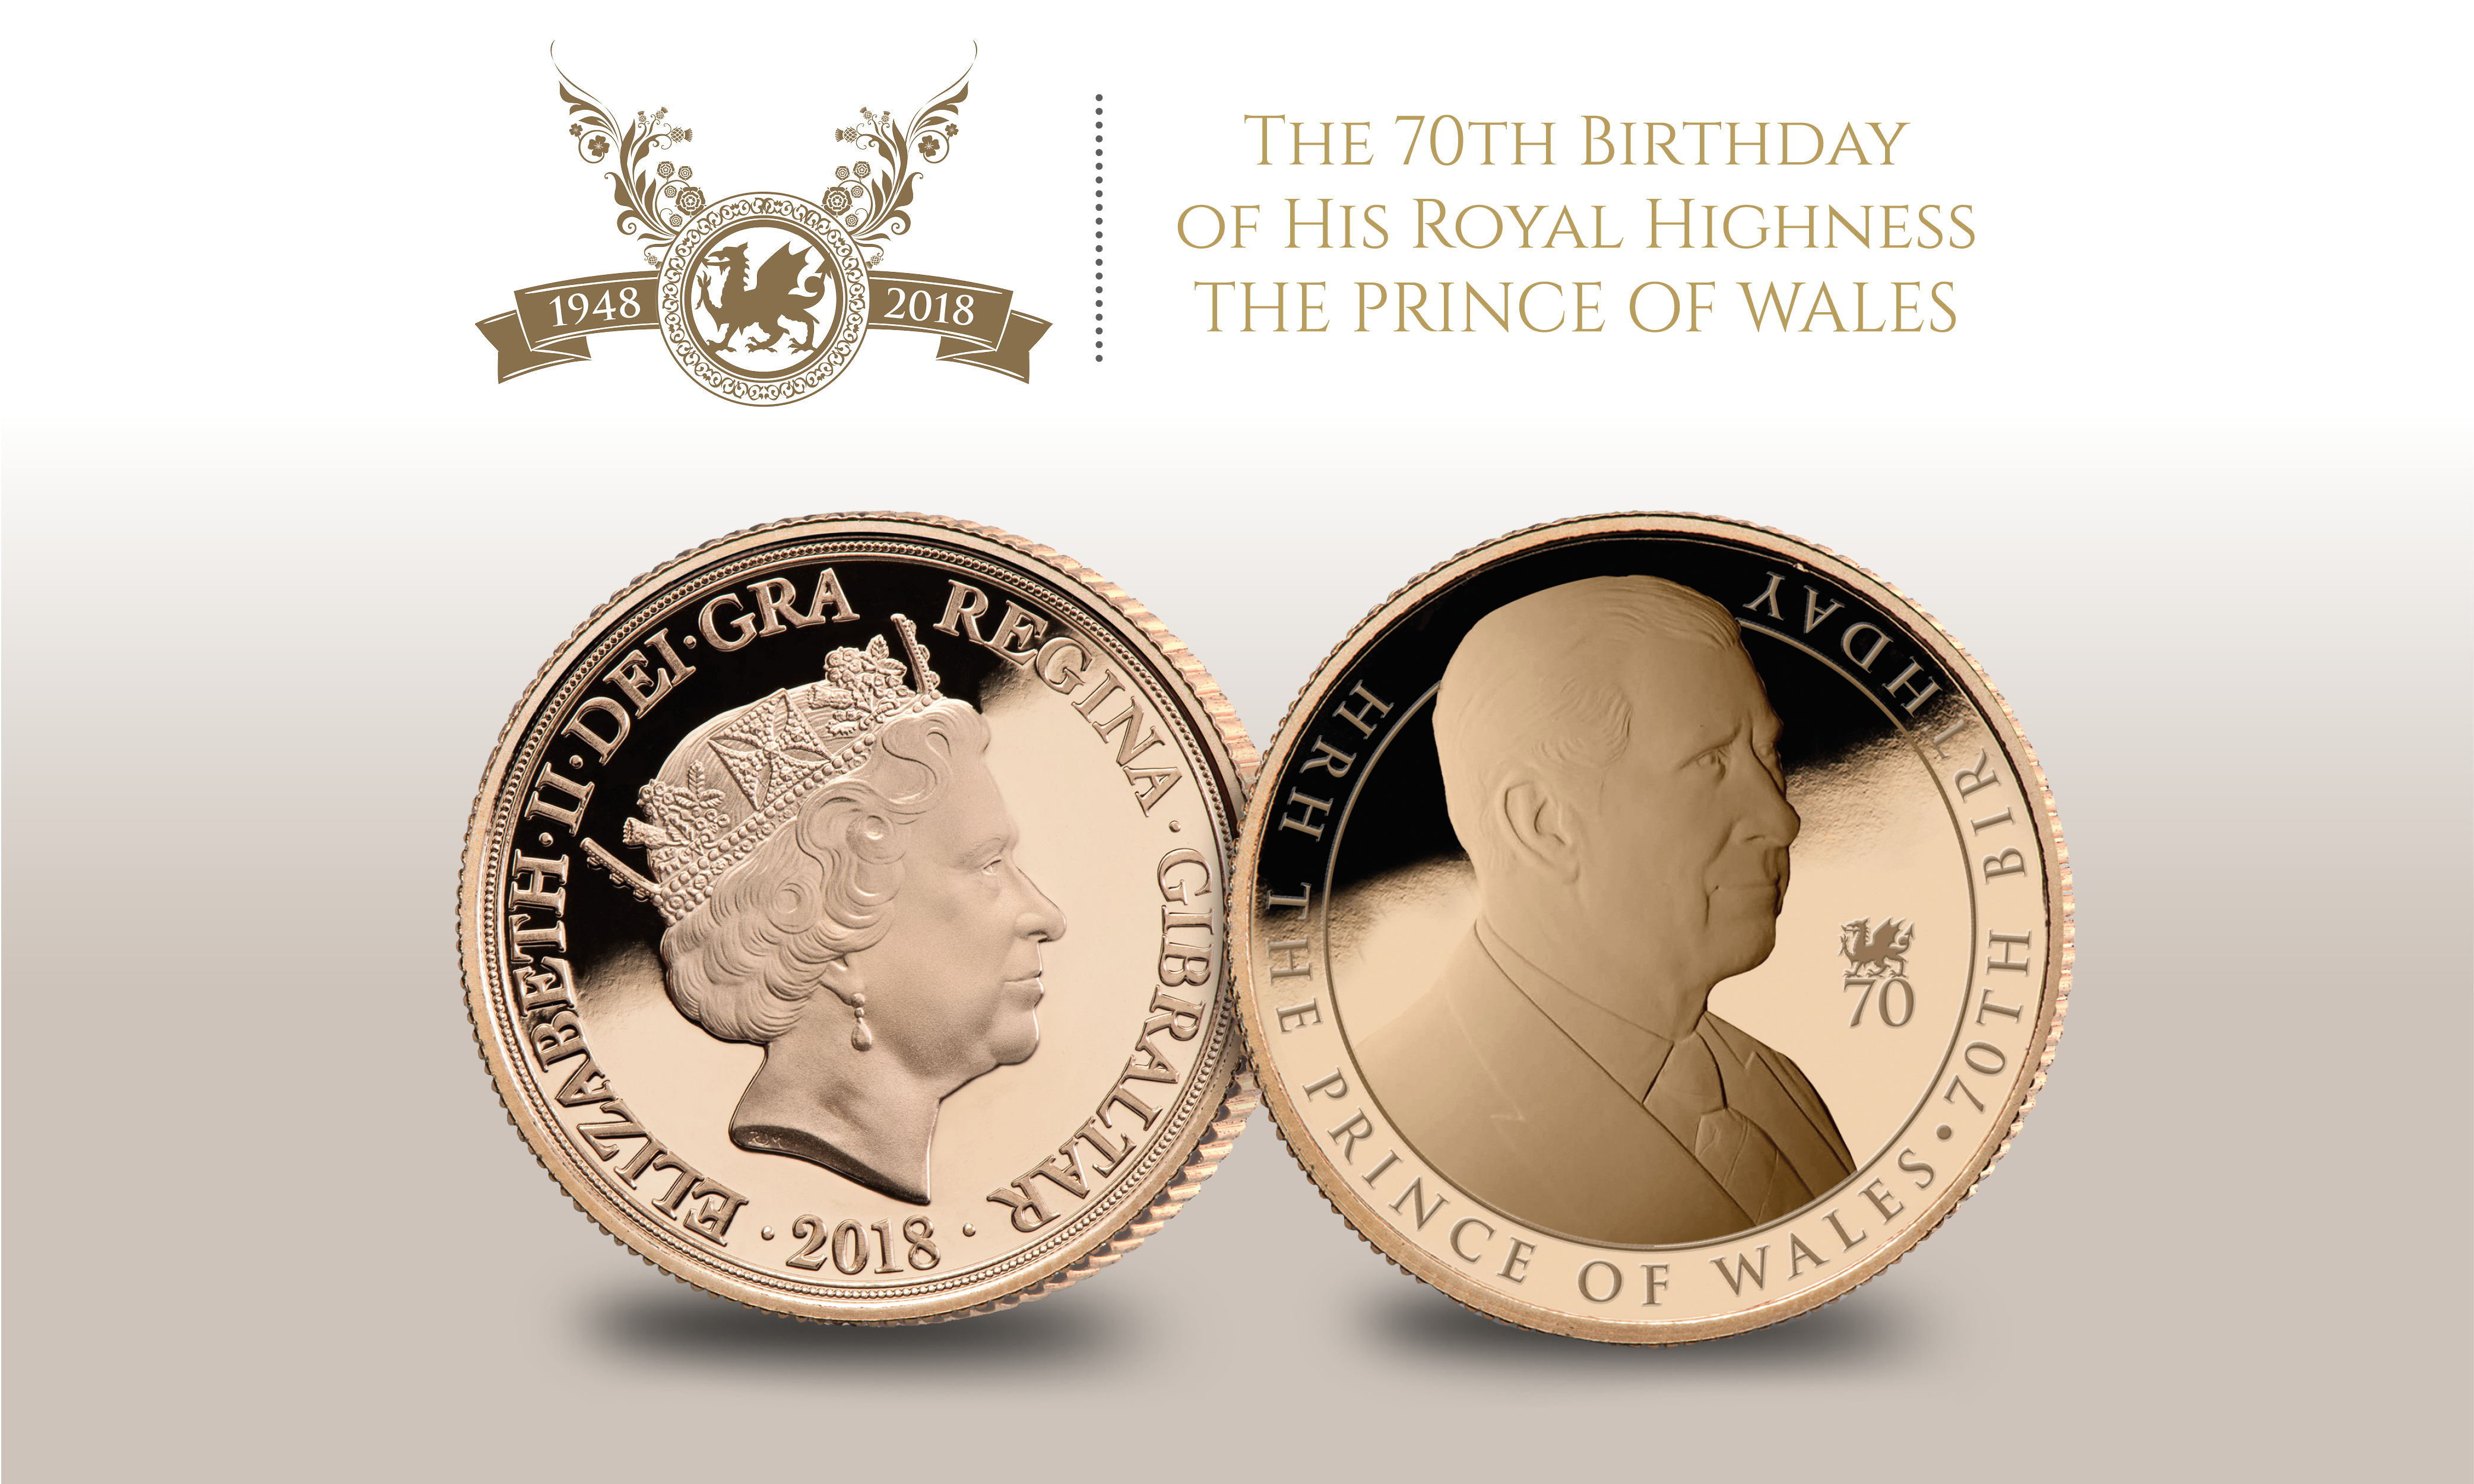 HRH The Prince of Wales Quarter Sovereign